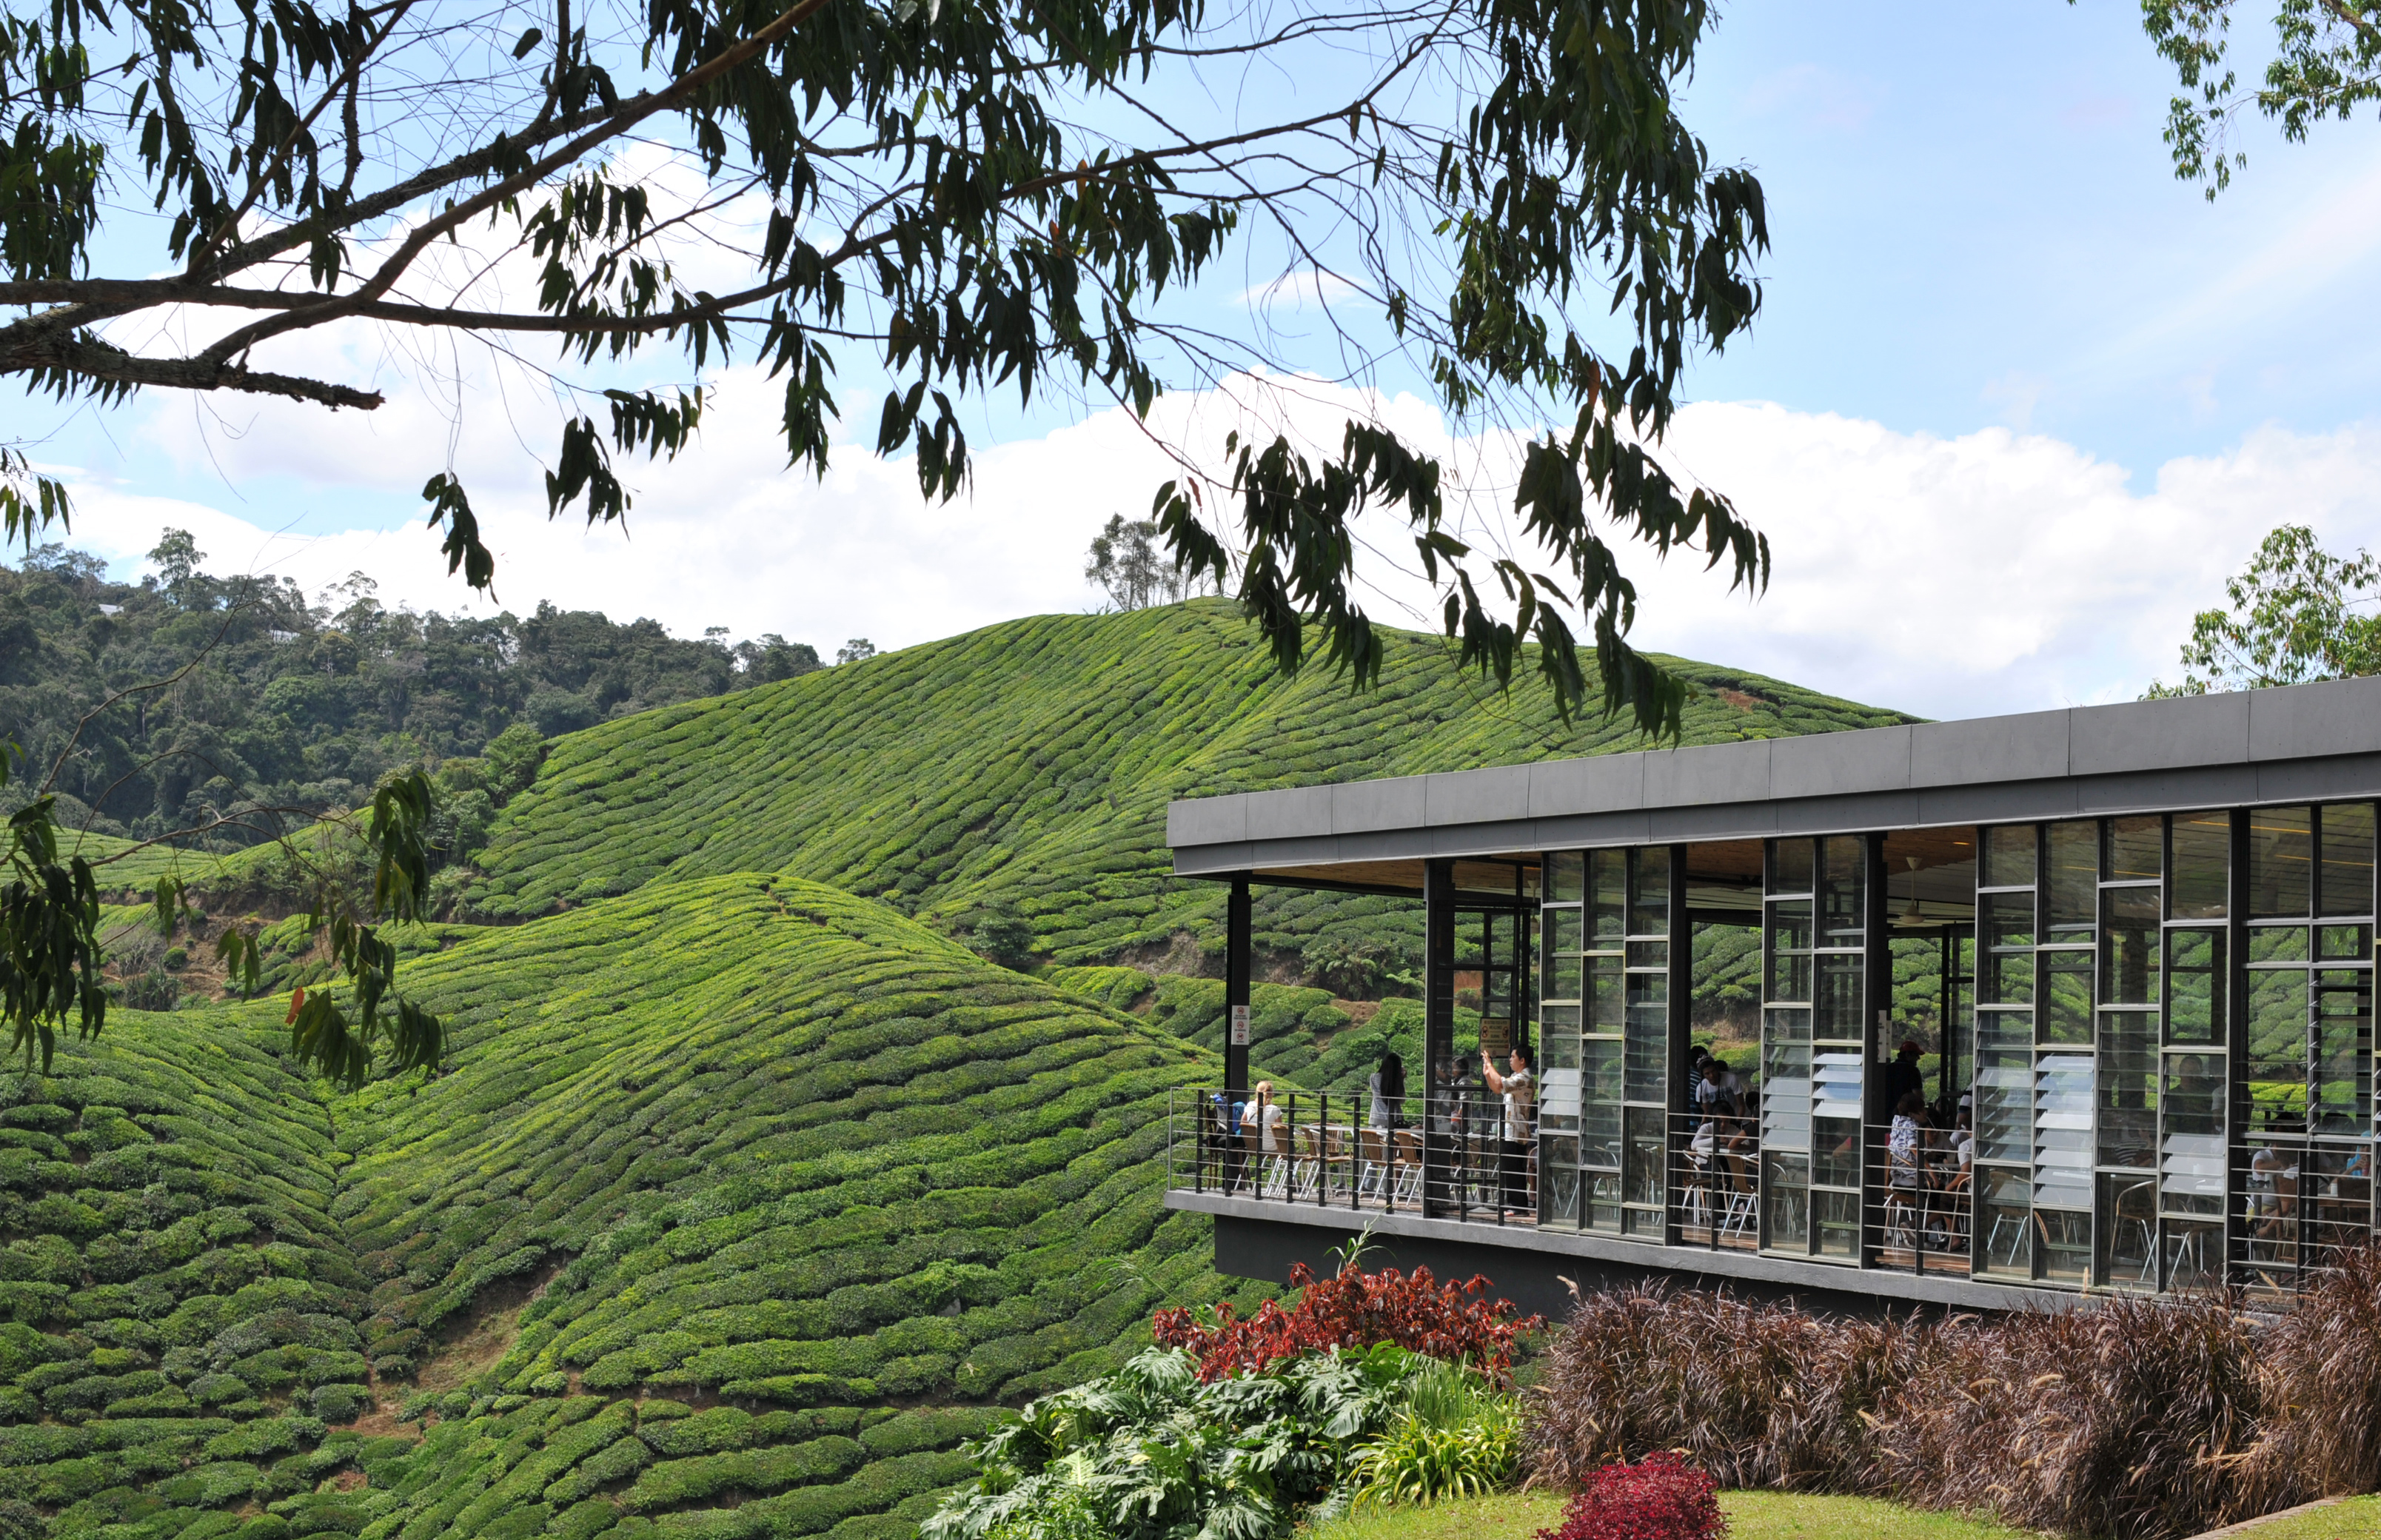 cameron highland A resort above all located exclusively on her own hill as the highest resort in cameron highlands strawberry park resort is an ideal retreat for holidays maker and business travellers alike.